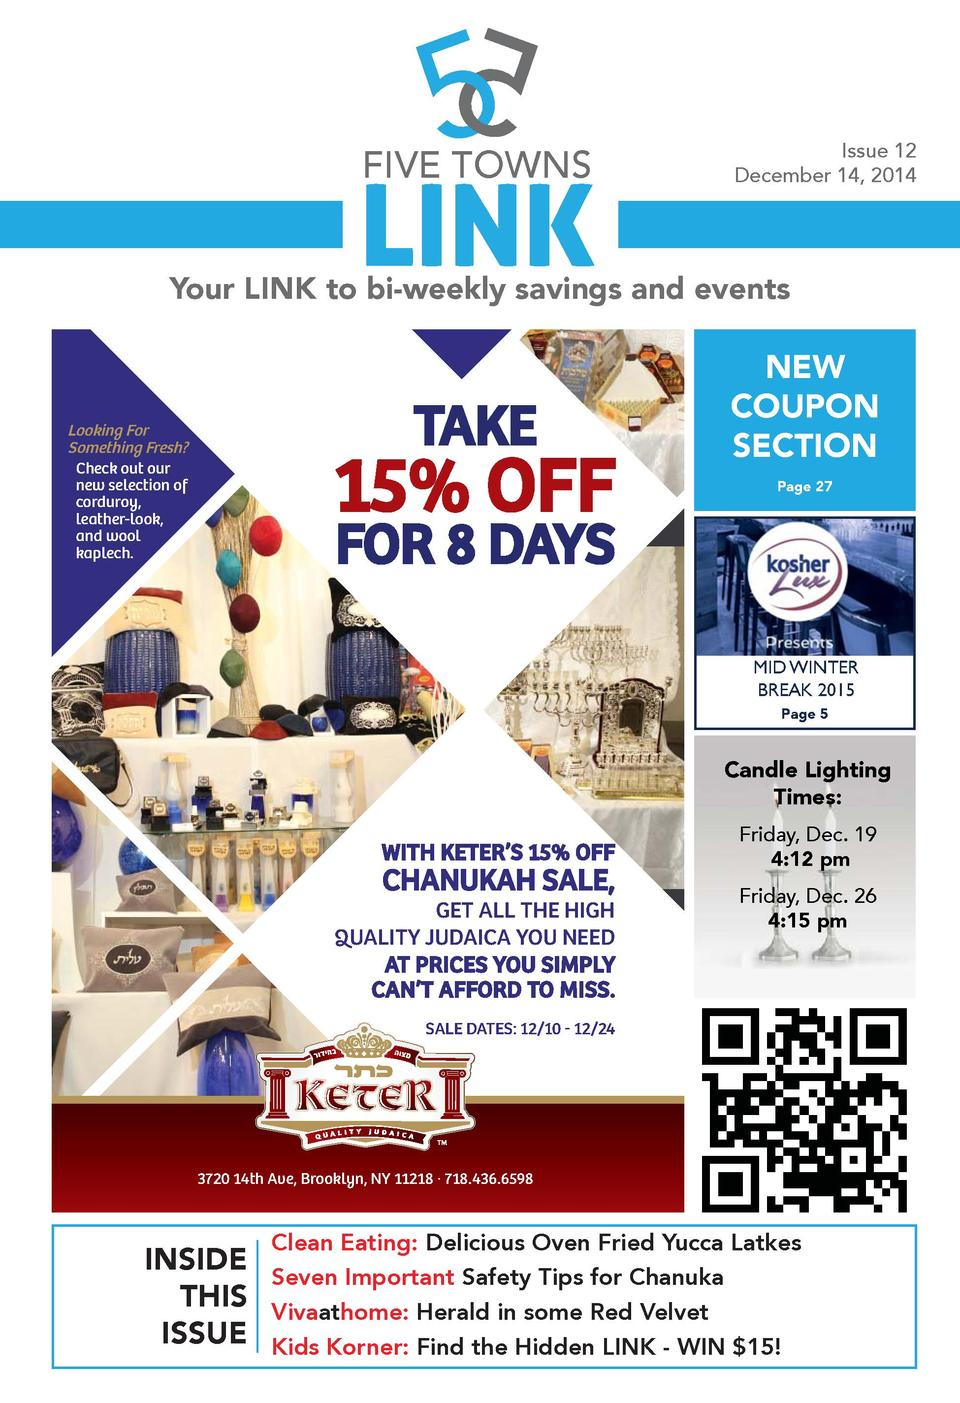 FIVE TOWNS  LINK  Issue 12 December 14, 2014  Your LINK to bi-weekly savings and events  TAKE  Looking For Something Fresh...